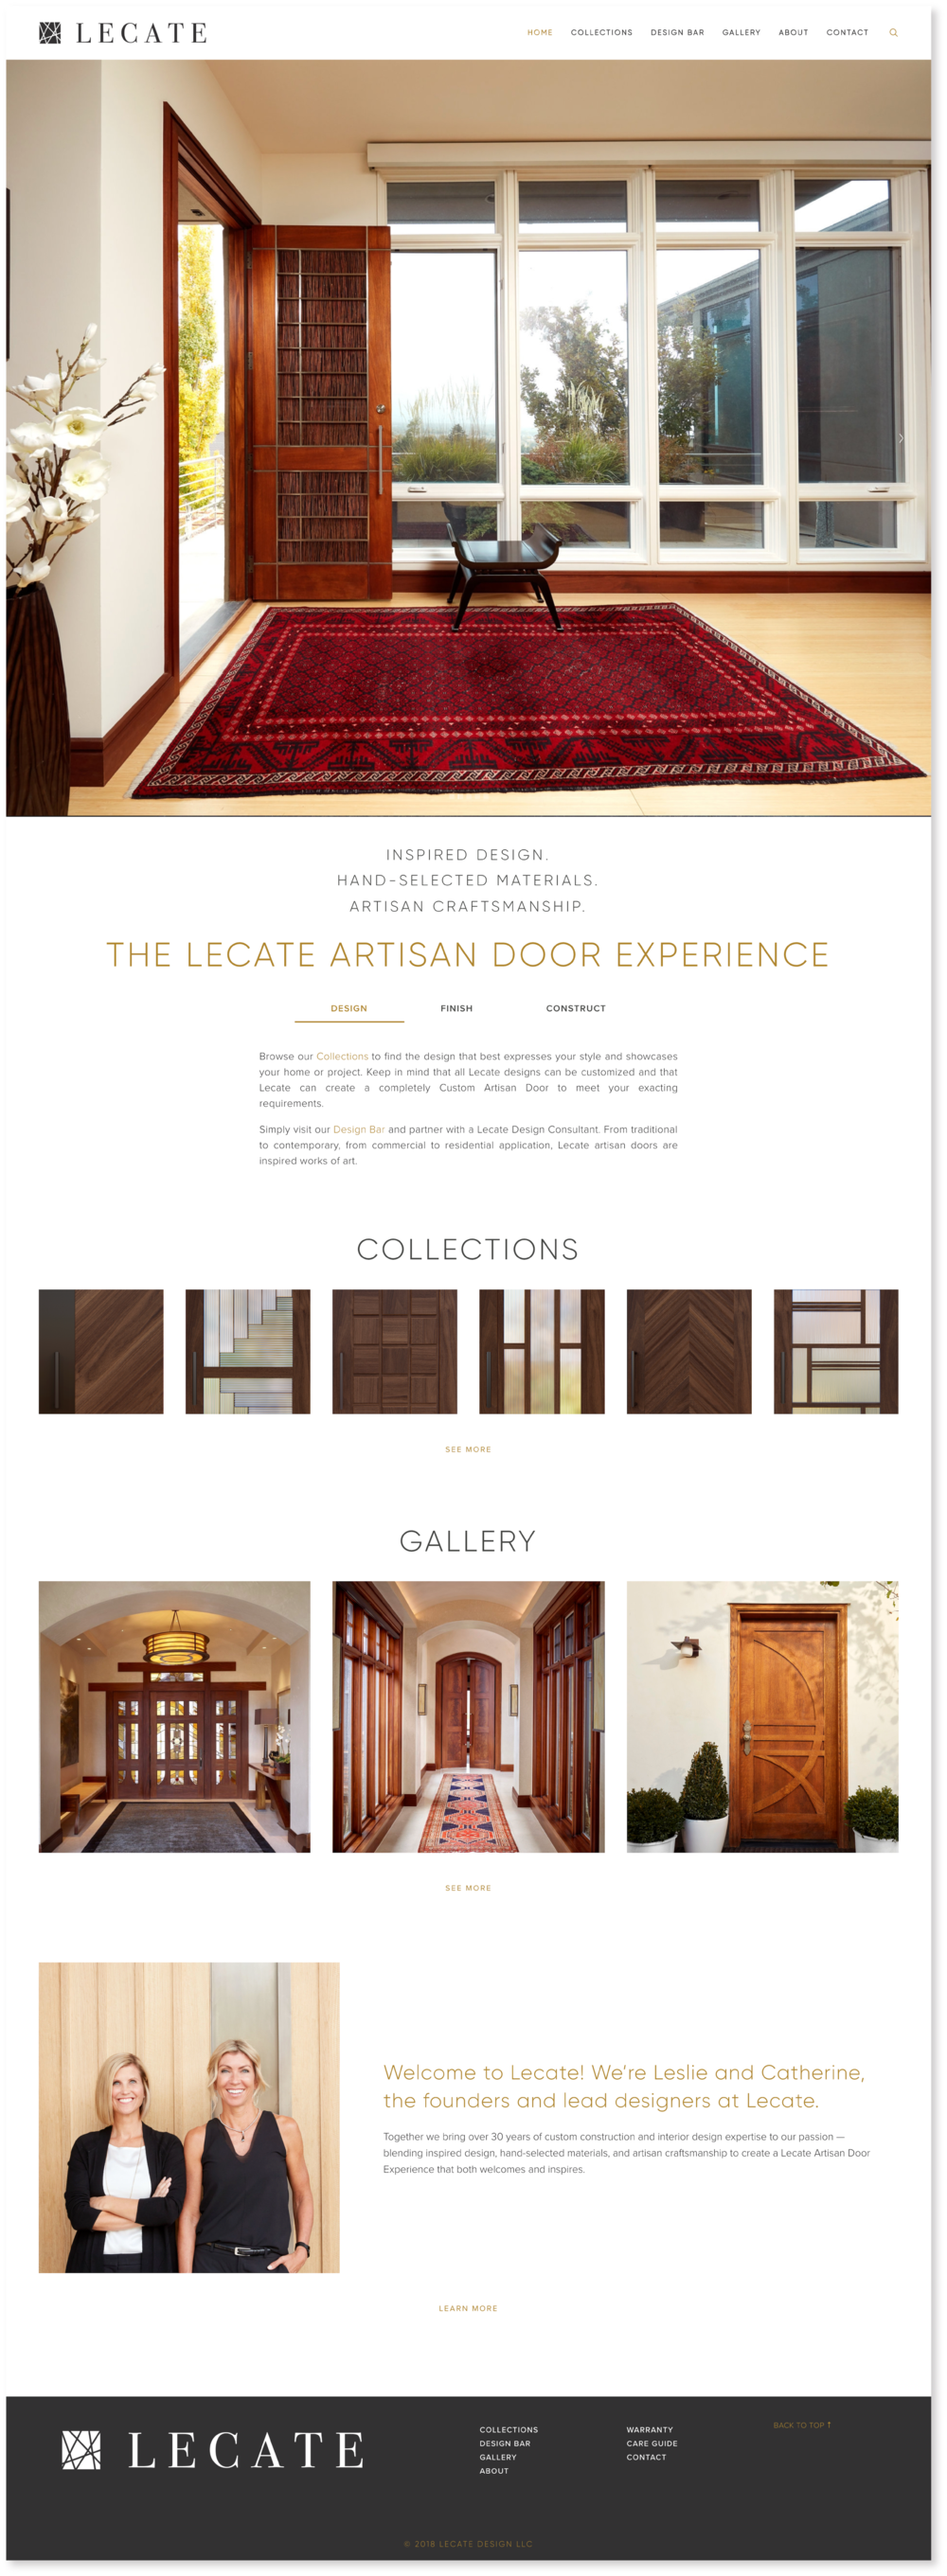 Lecate-Home-Page-Design-Website-Squarespace-Artisan-Doors-Salt-Lake-City-Treadaway-Design.png